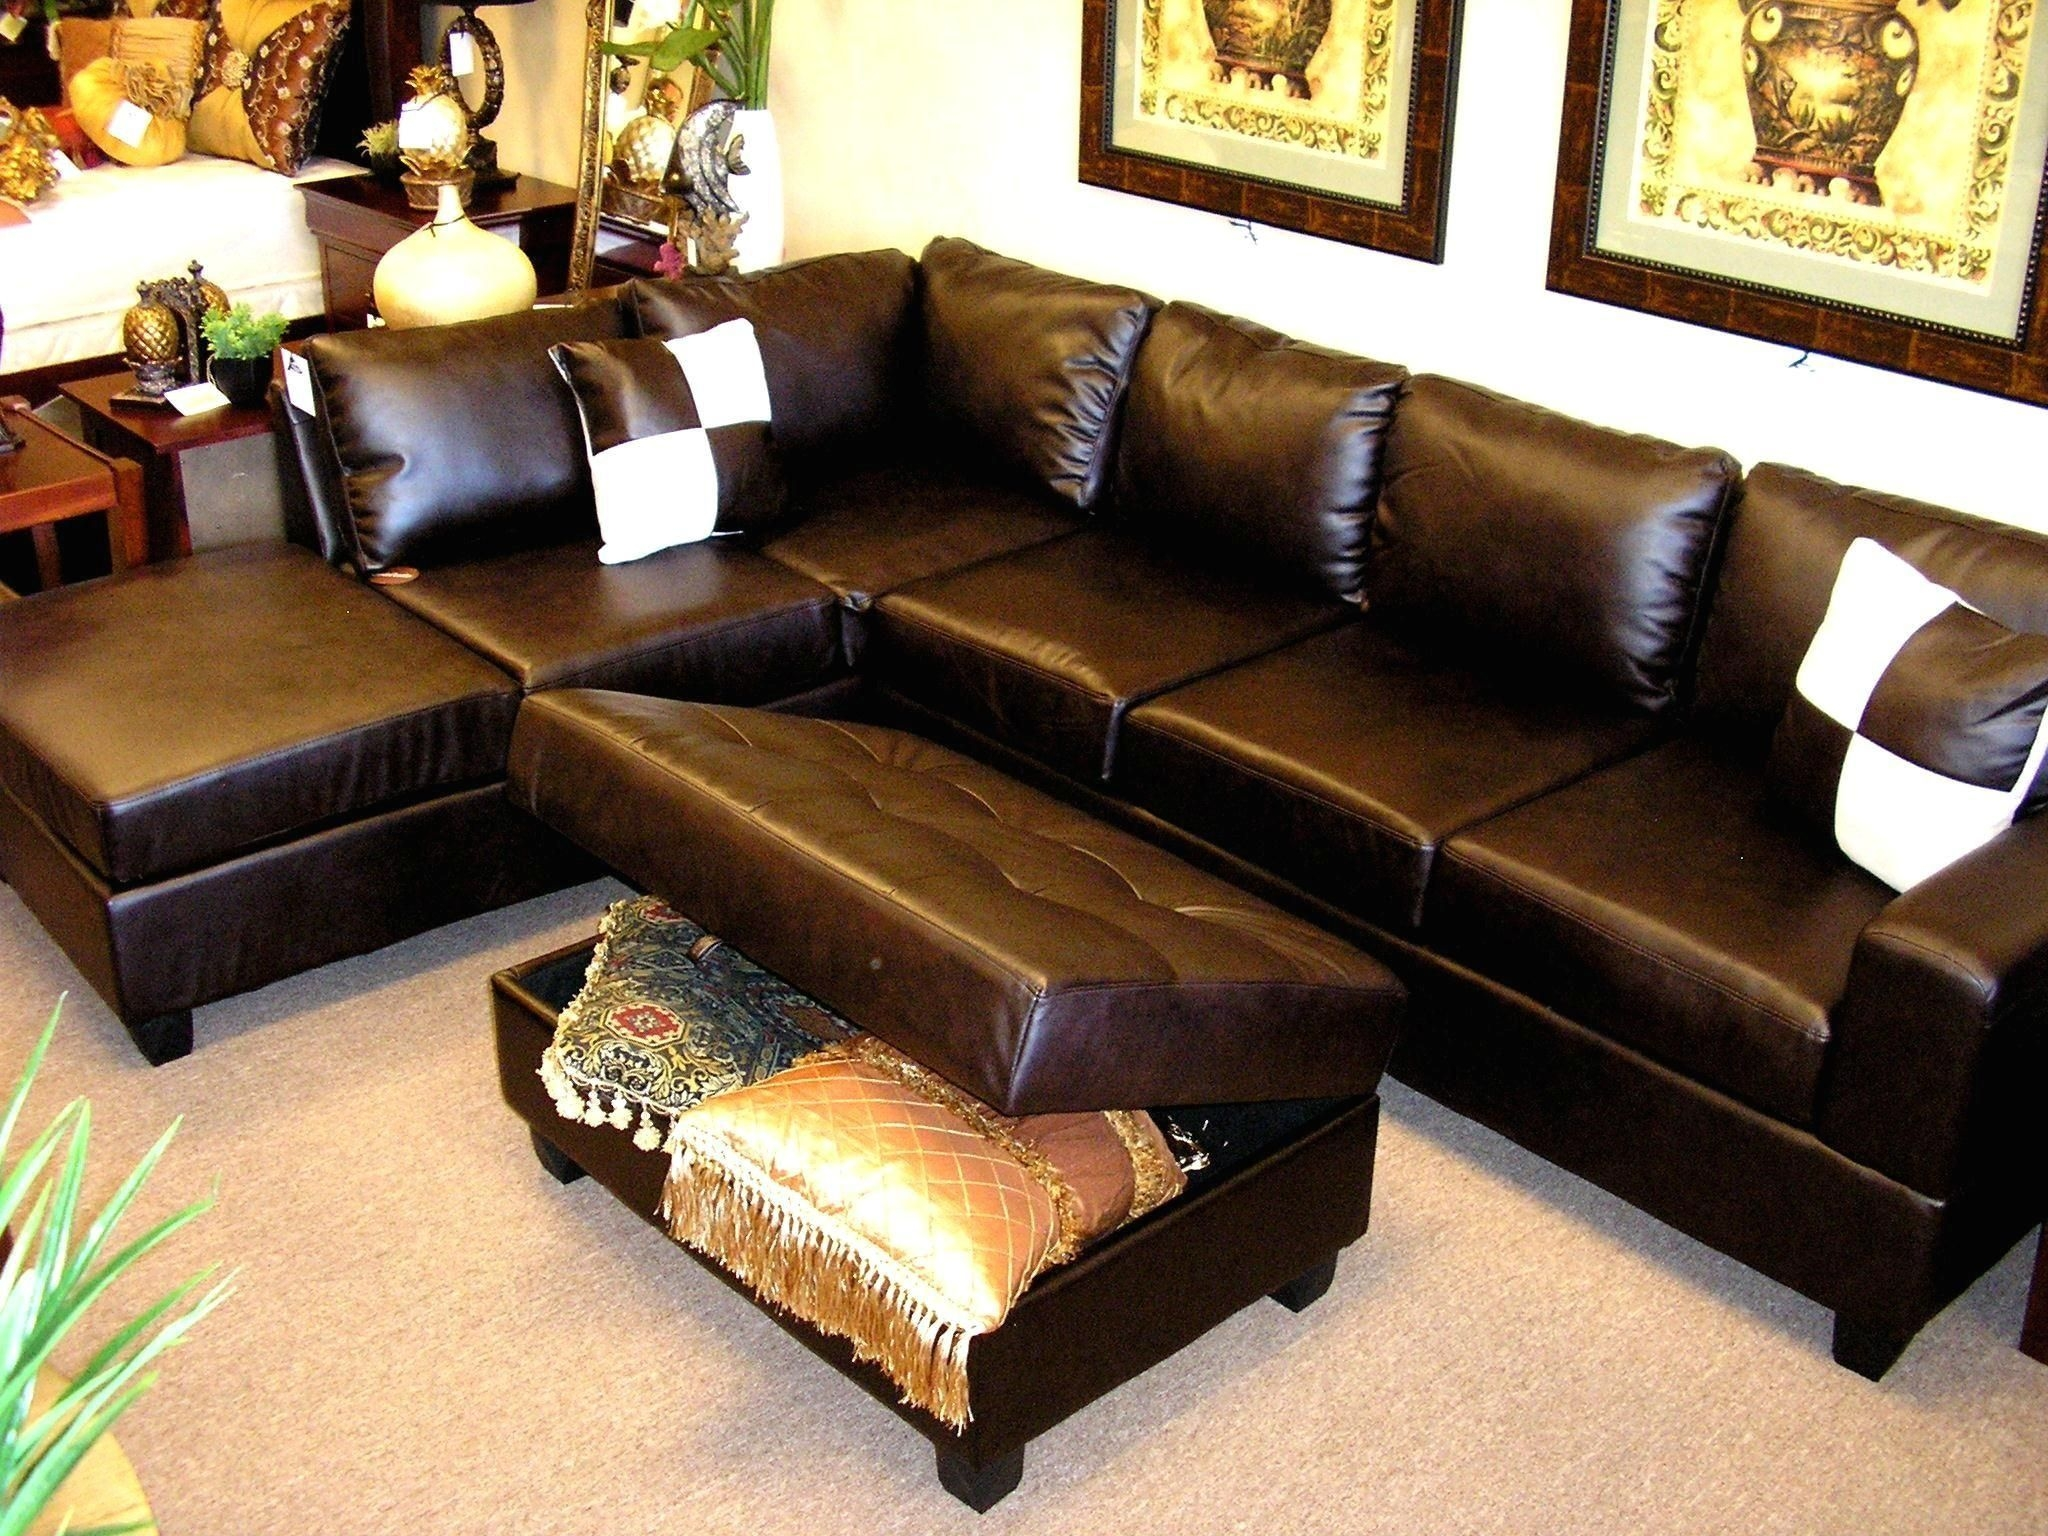 Charmant Large Sectional Sofas.Extra Large Leather Sectional Sofa .